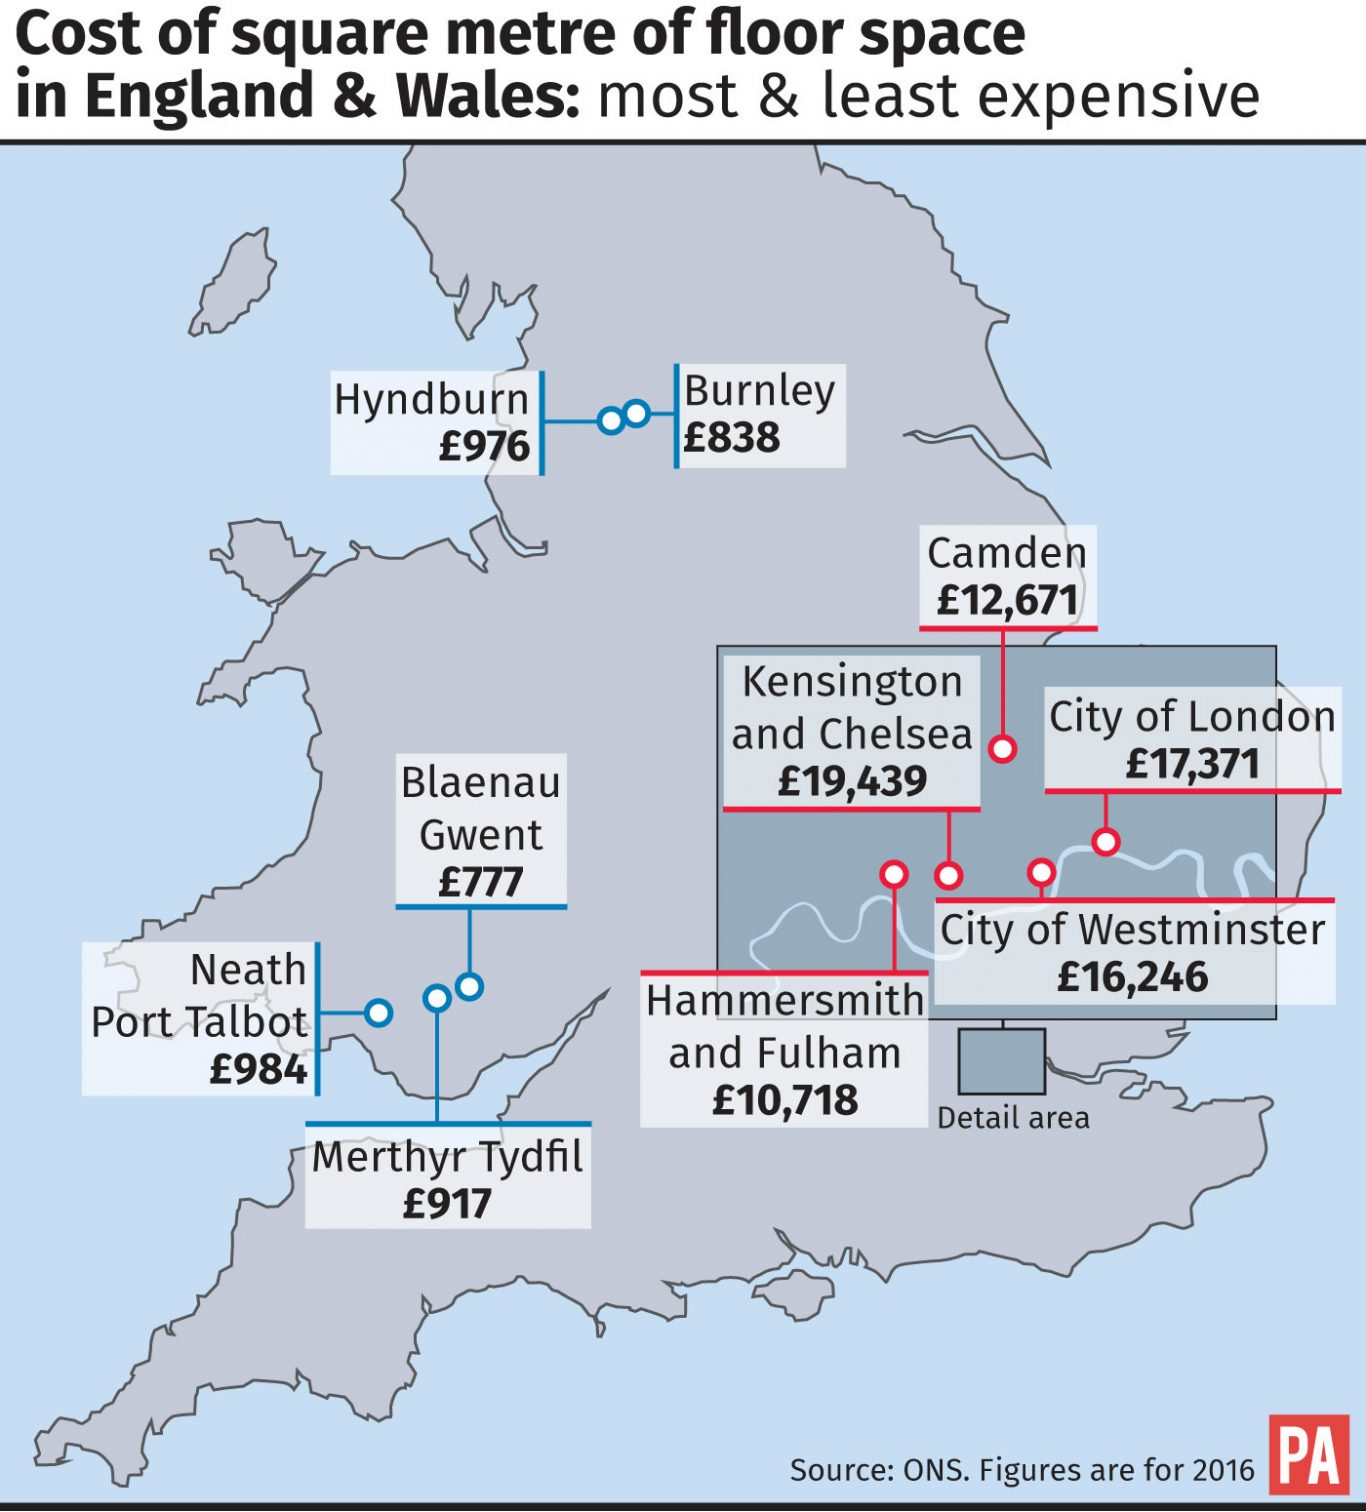 Cost of square metre of floor space in England & Wales: most & least expensive.